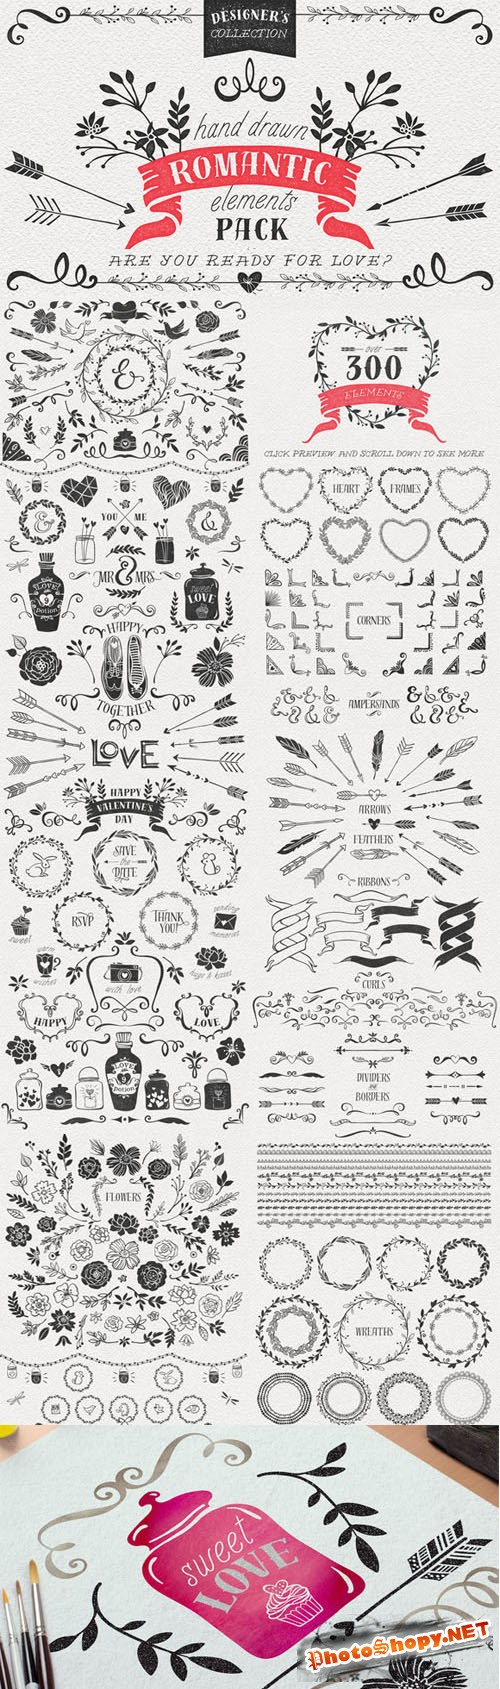 Hand Drawn Romantic Decoration Pack - Creativemarket 167958